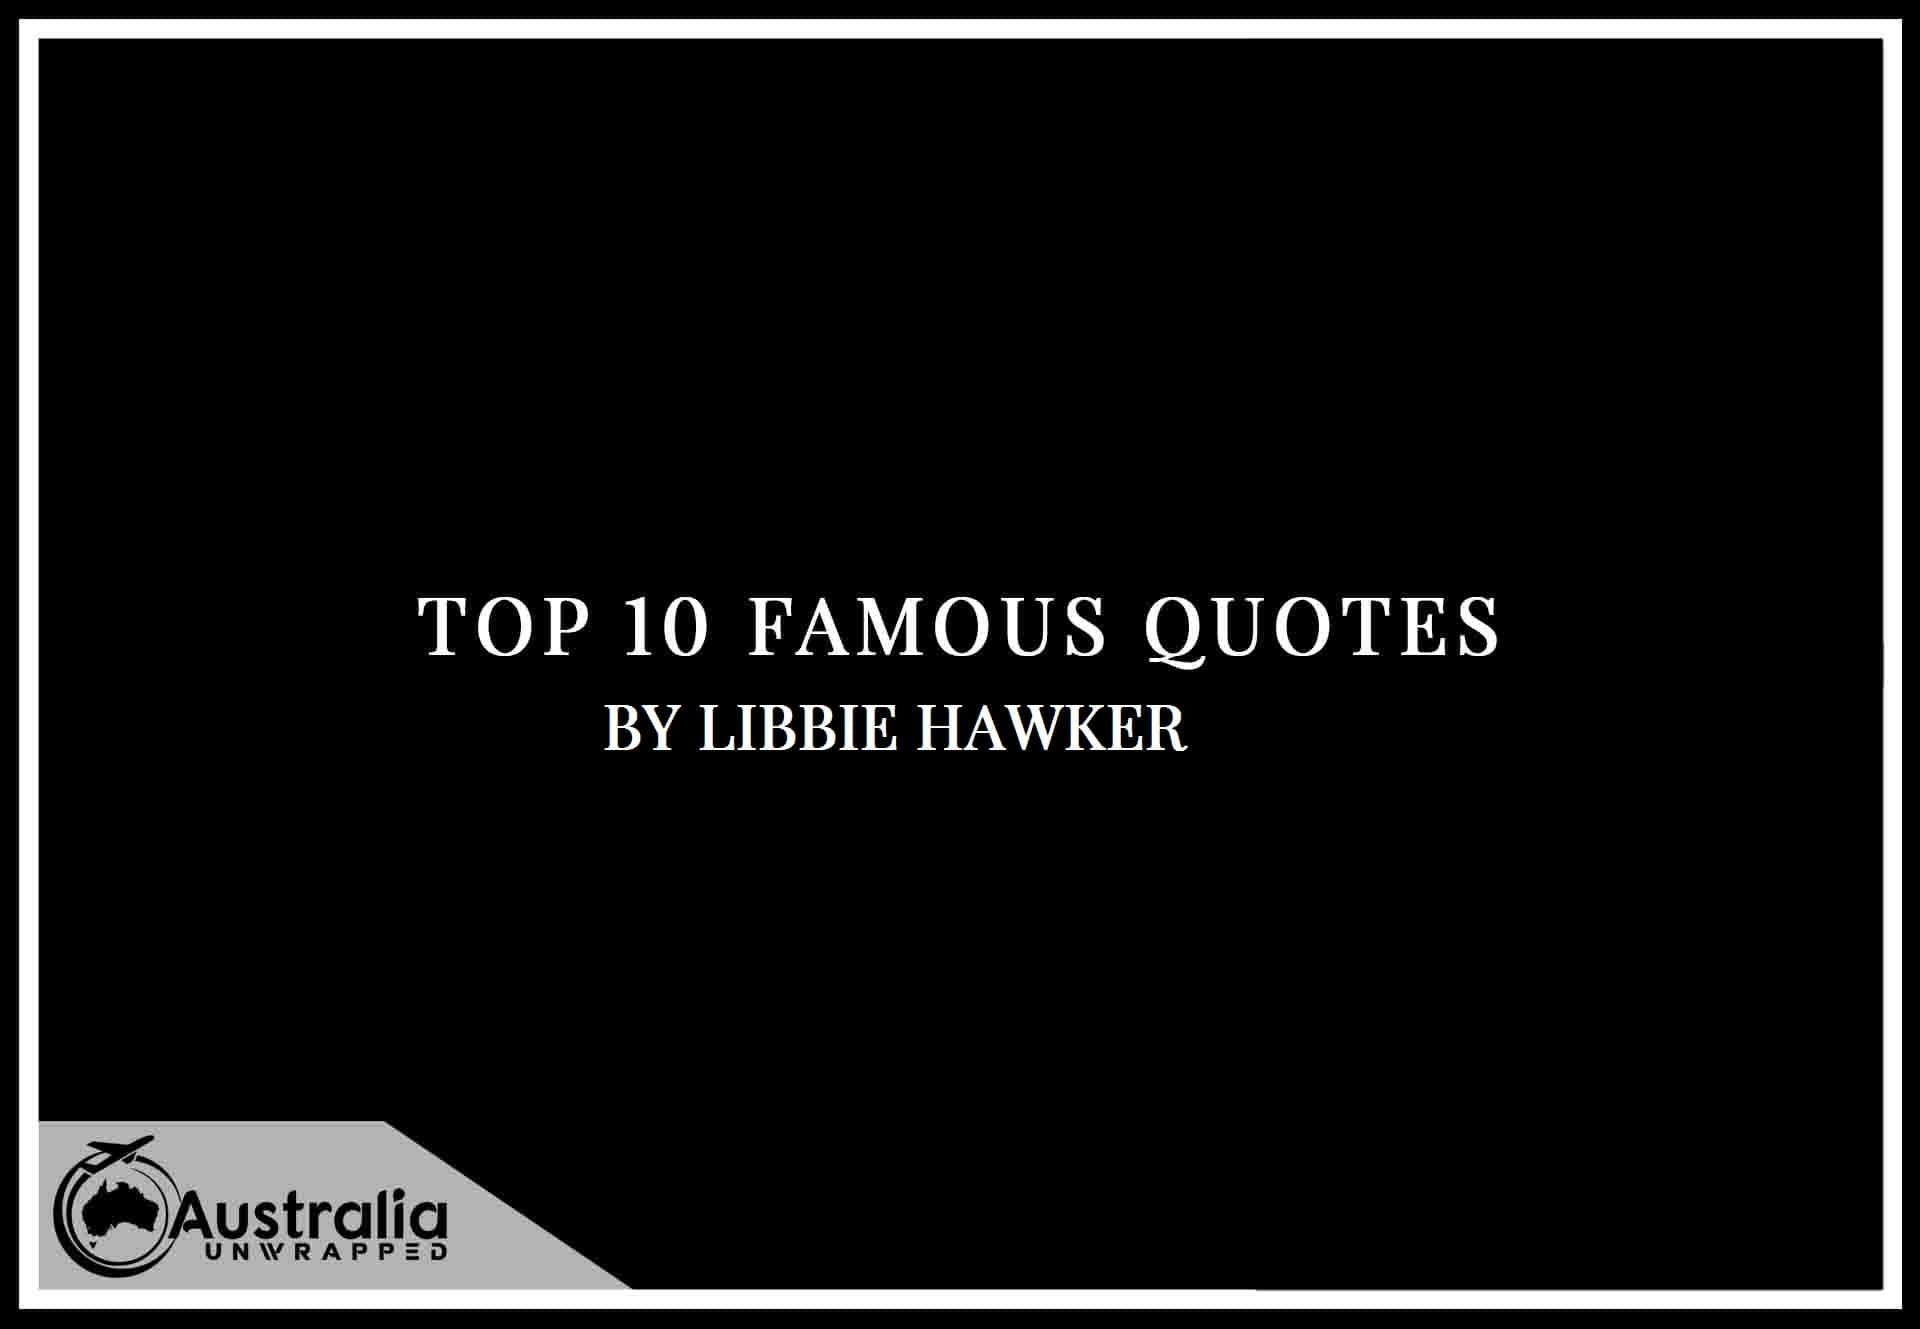 Libbie Hawker's Top 10 Popular and Famous Quotes